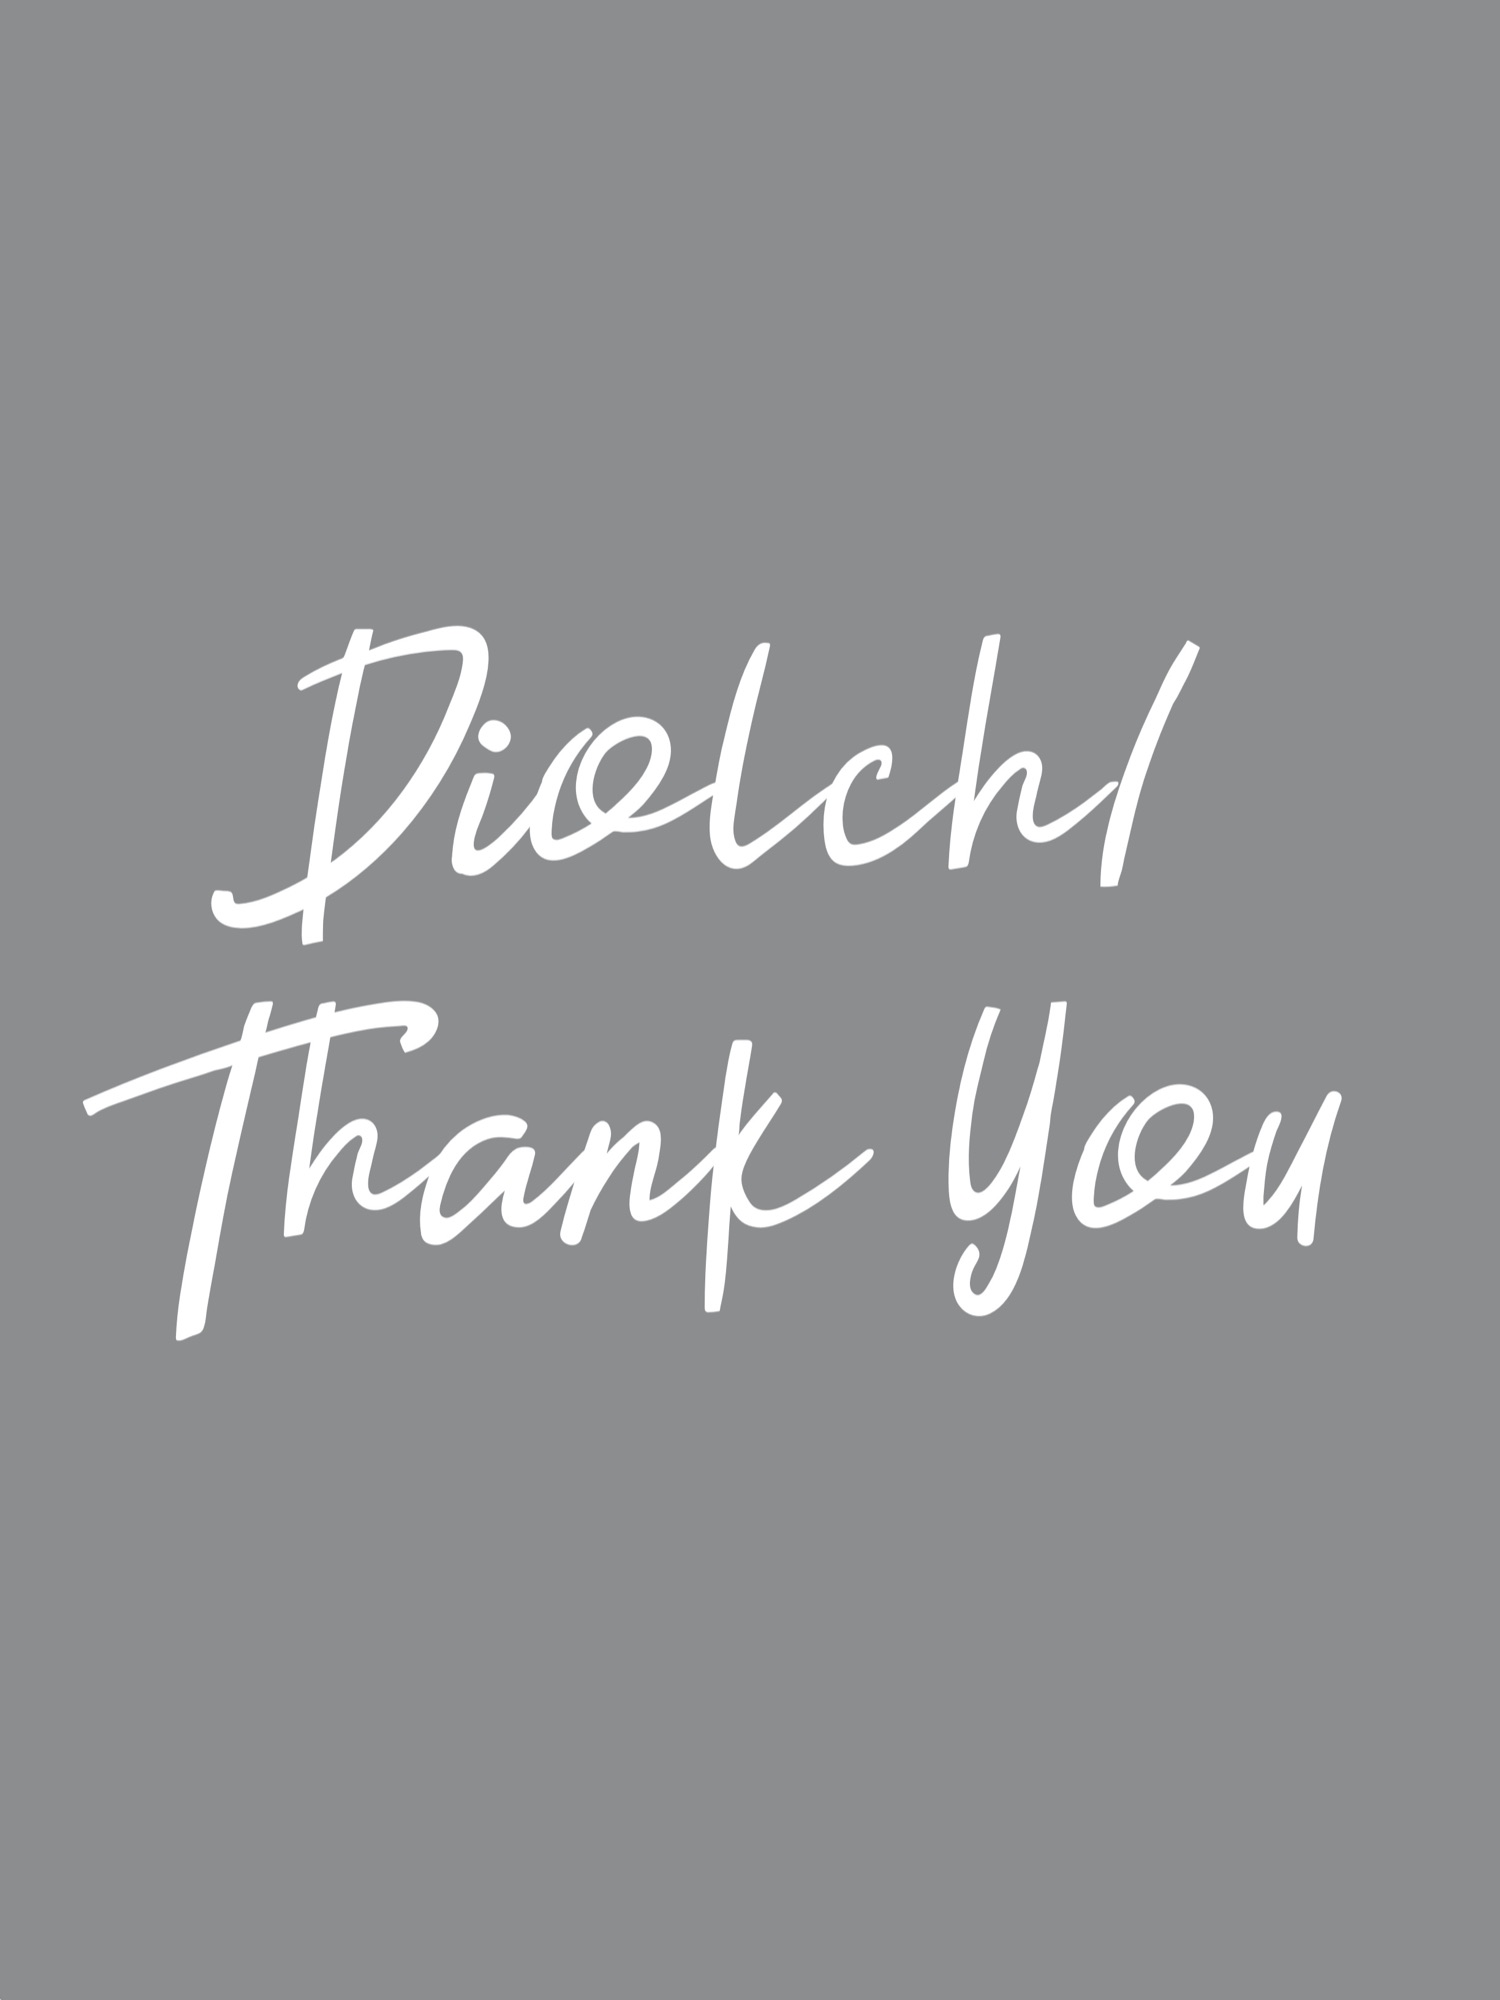 diolch and thank you